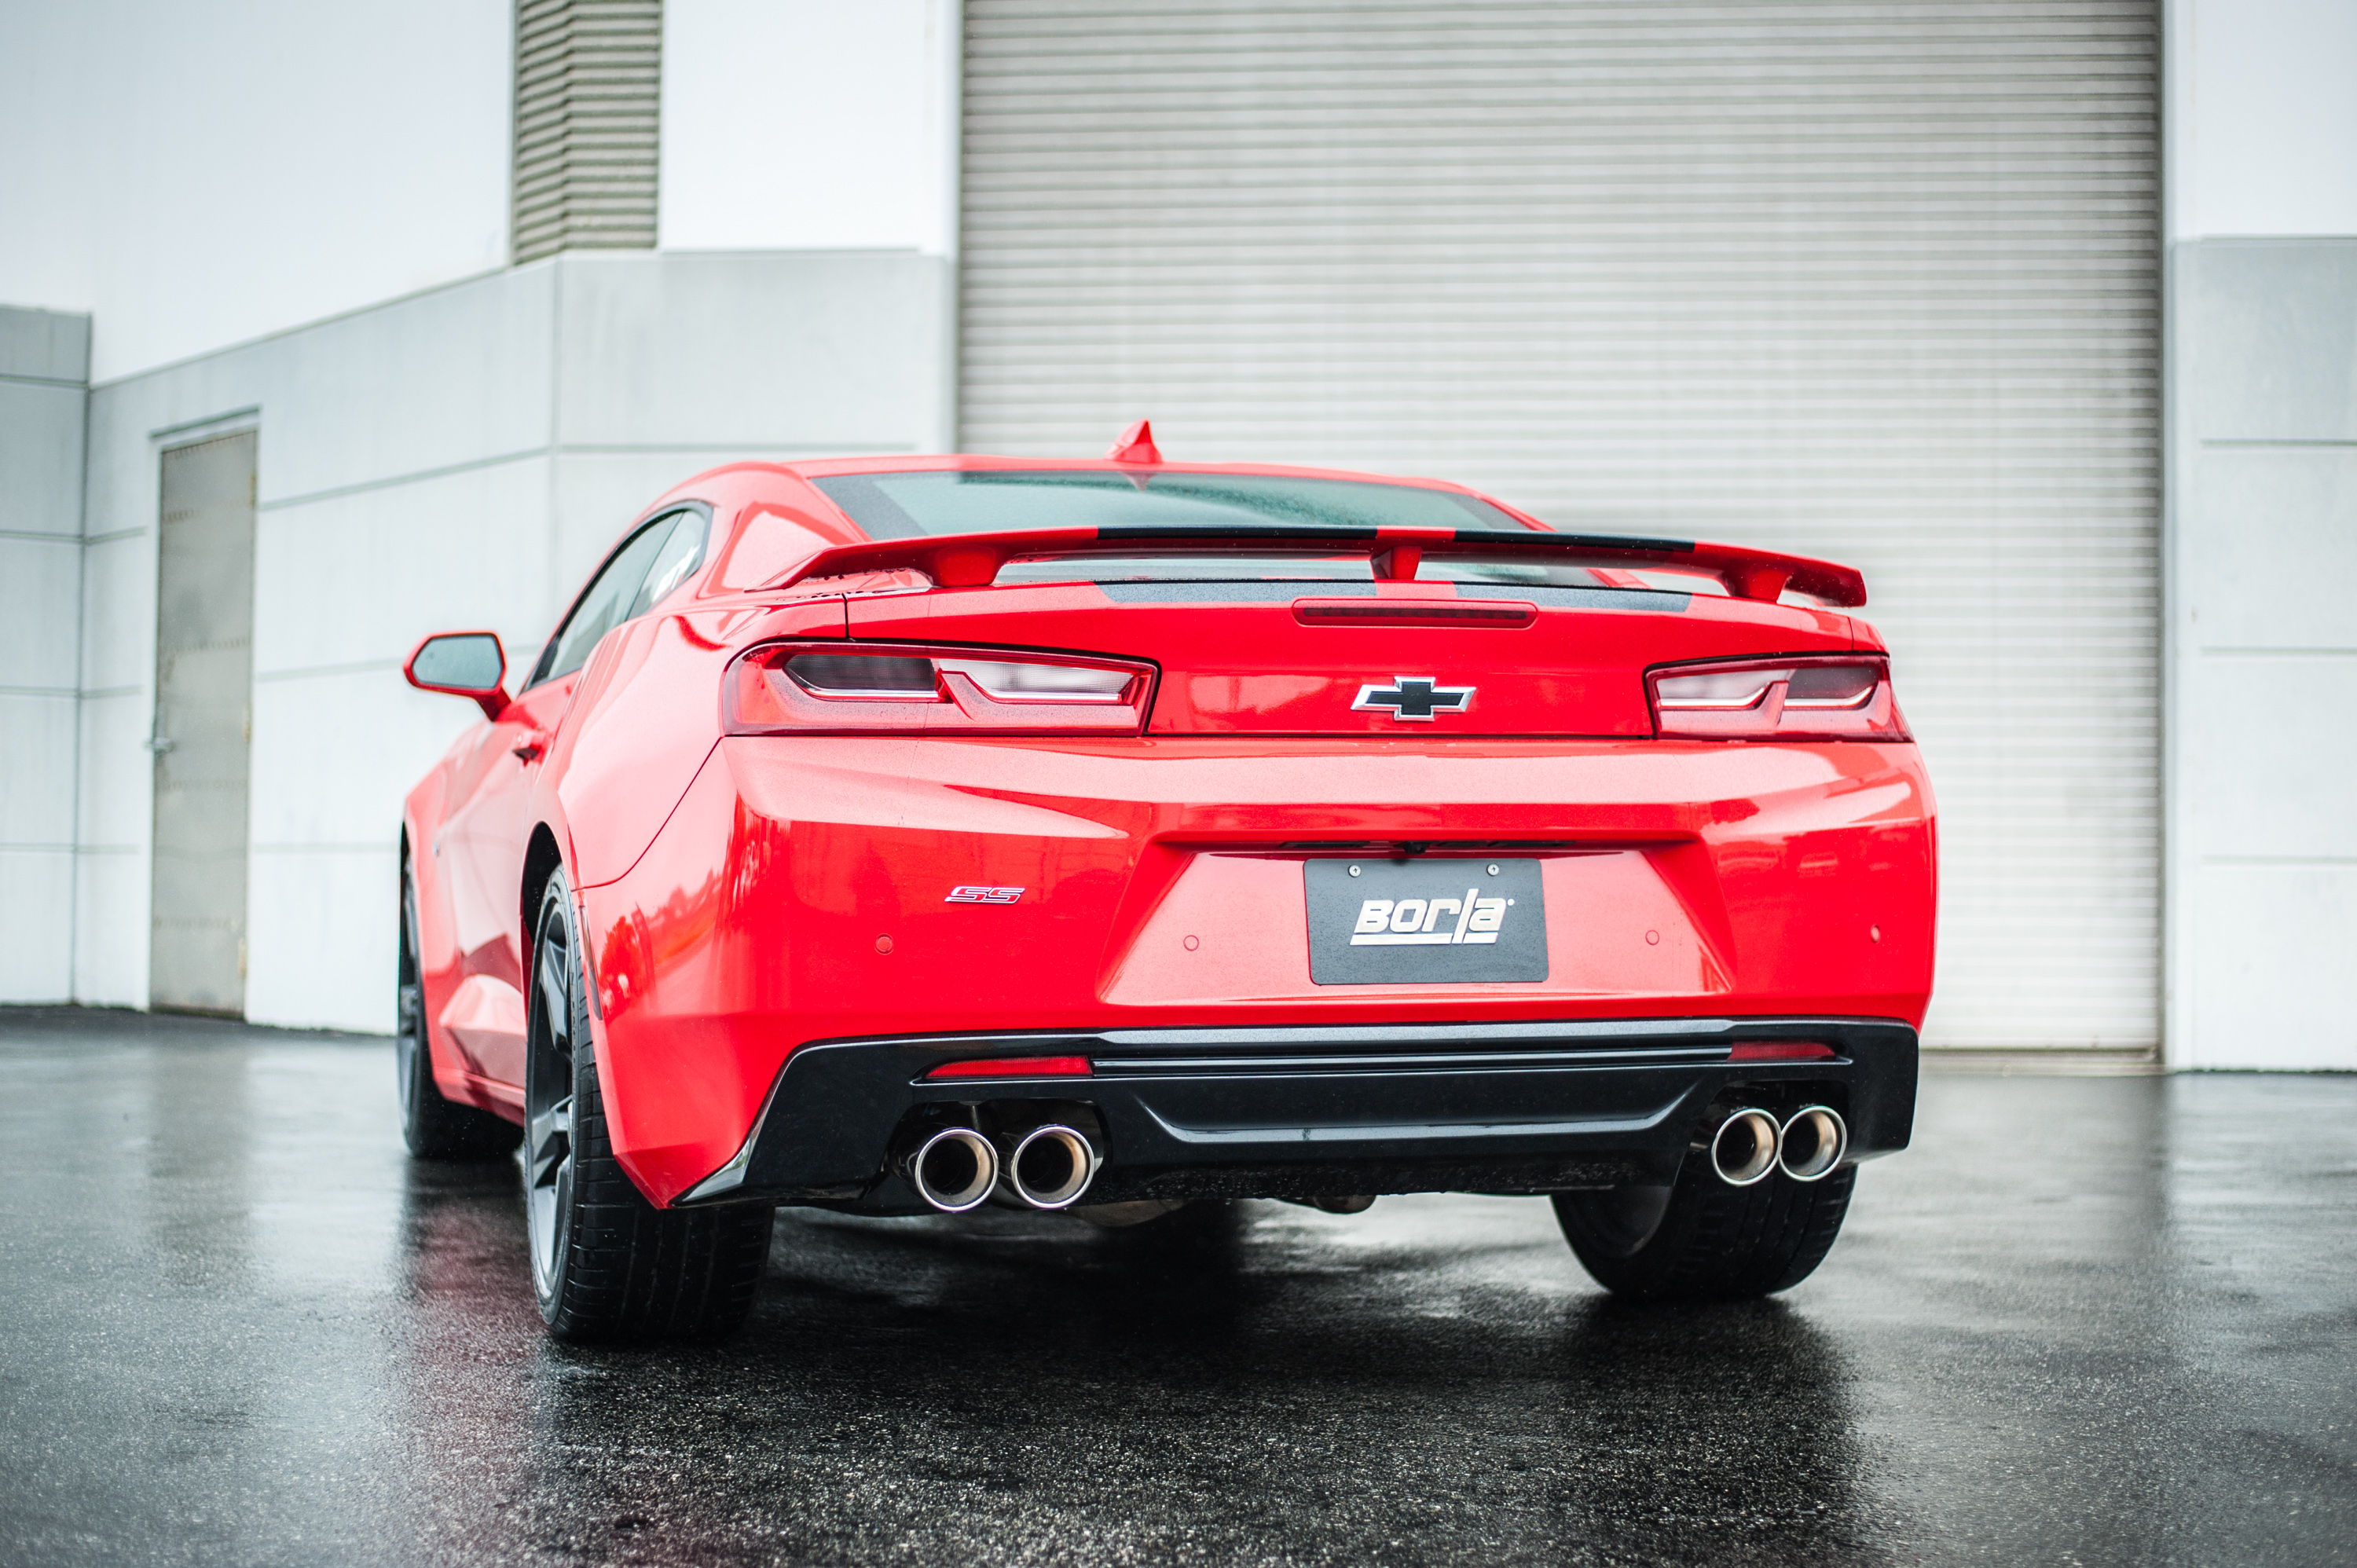 Borla Reveals New Range Of Performance Exhaust Systems For Chevy Camaro